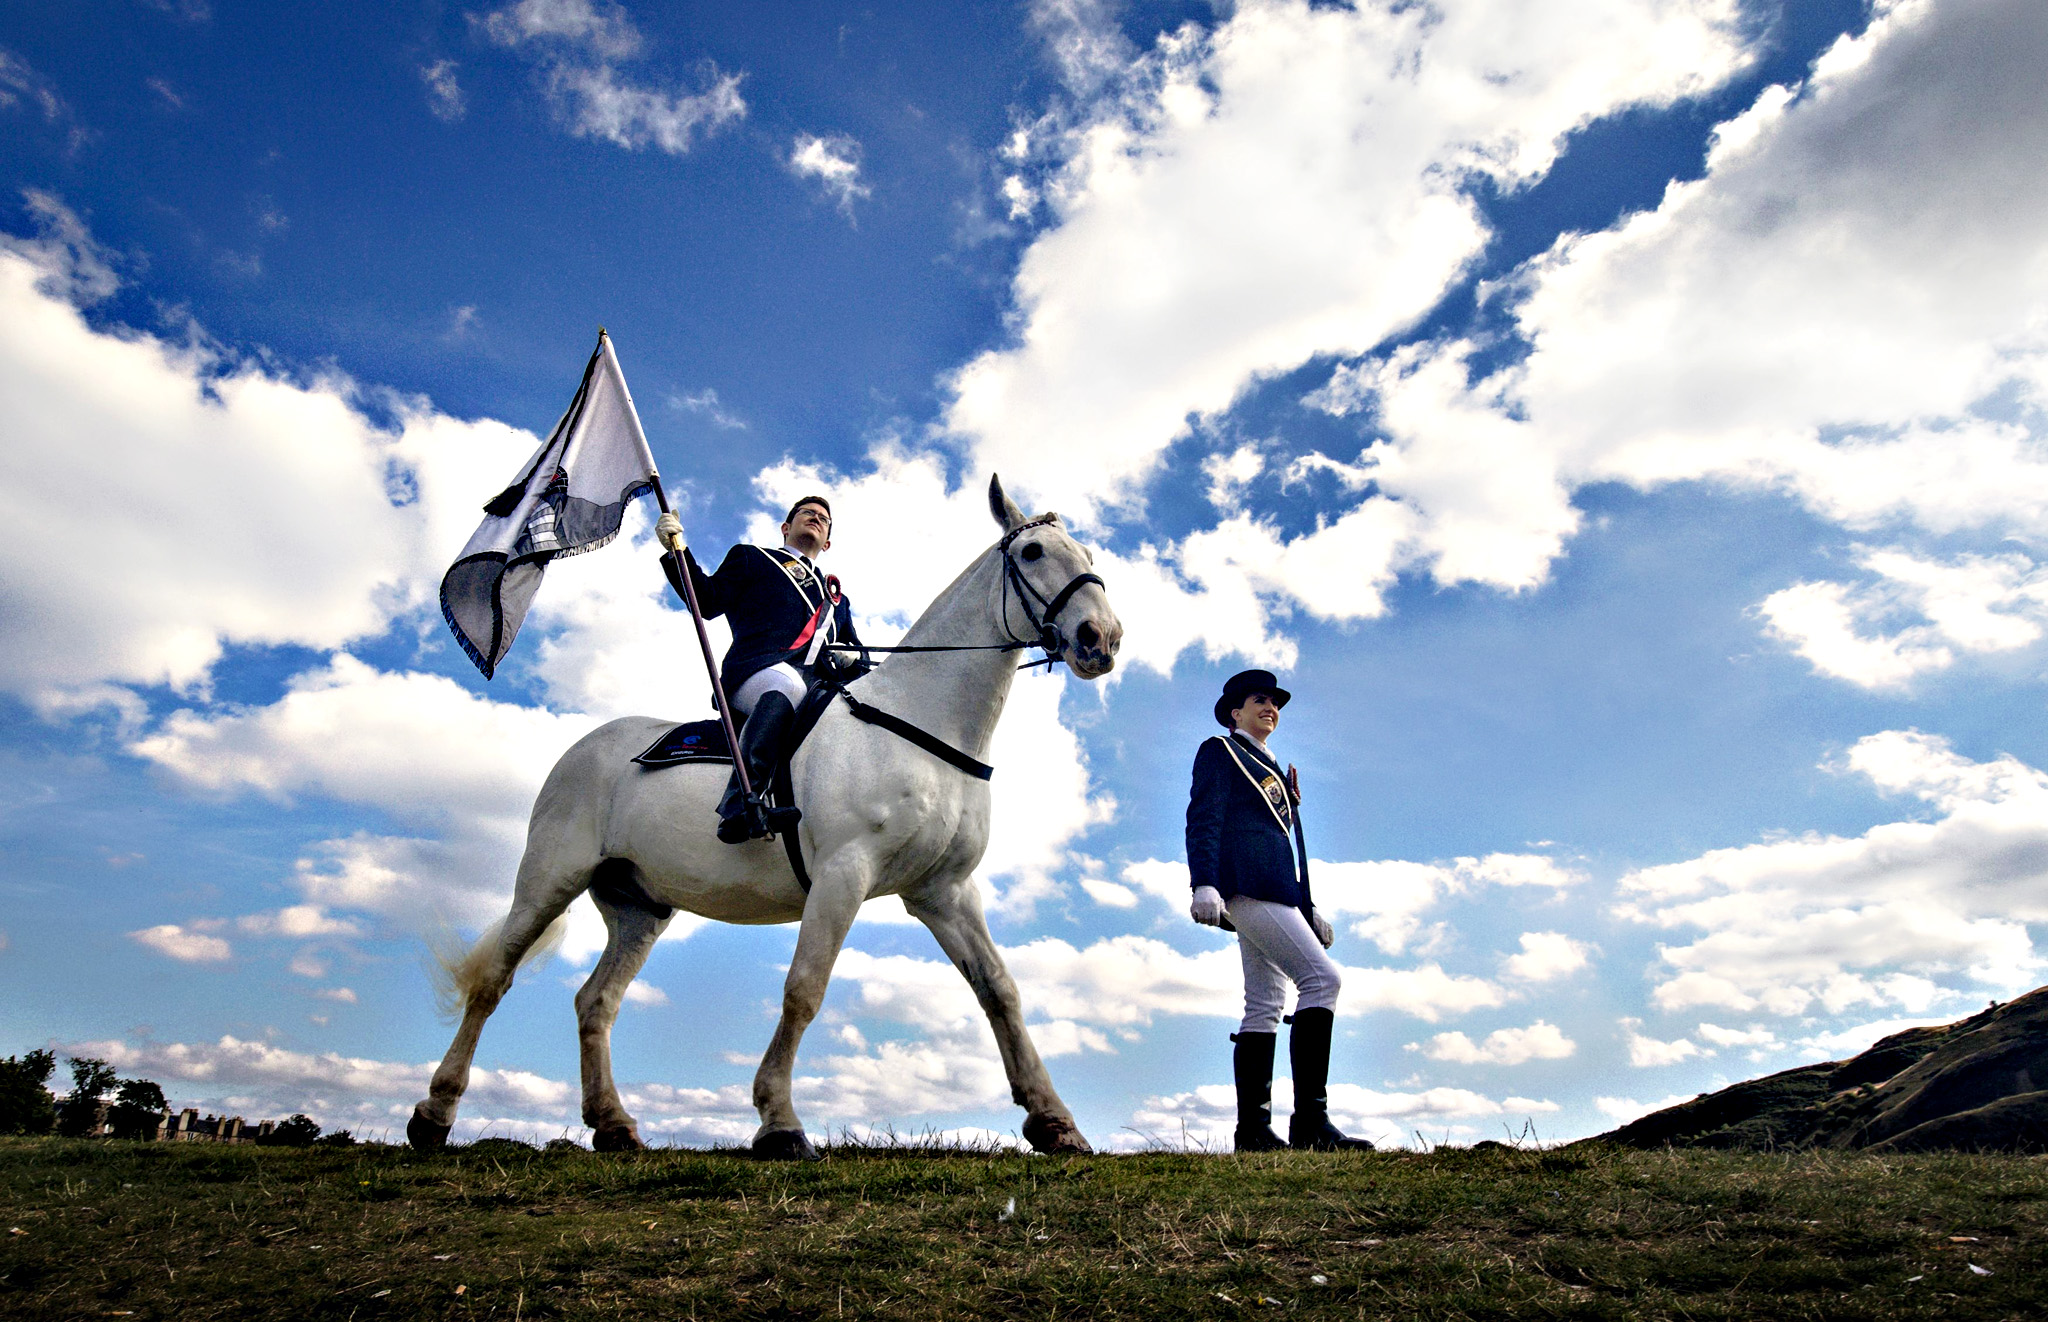 John Baxter riding Monarch the horse and Gemma Williamson during a photocall in Holyrood Park in Edinburgh ahead of the Edinburgh Riding of the Marches. PRESS ASSOCIATION Photo. Picture date: Thursday September 10, 2015. One of the largest rides in Scotland, and a spectacle of historical significance, the Edinburgh Riding of the Marches, expects to attract up to 20,000 spectators this weekend when 280 riders from Edinburgh and riding towns across the country gather together for a procession up the Royal Mile. The Riding of the Marches will take place on Sunday 13th September